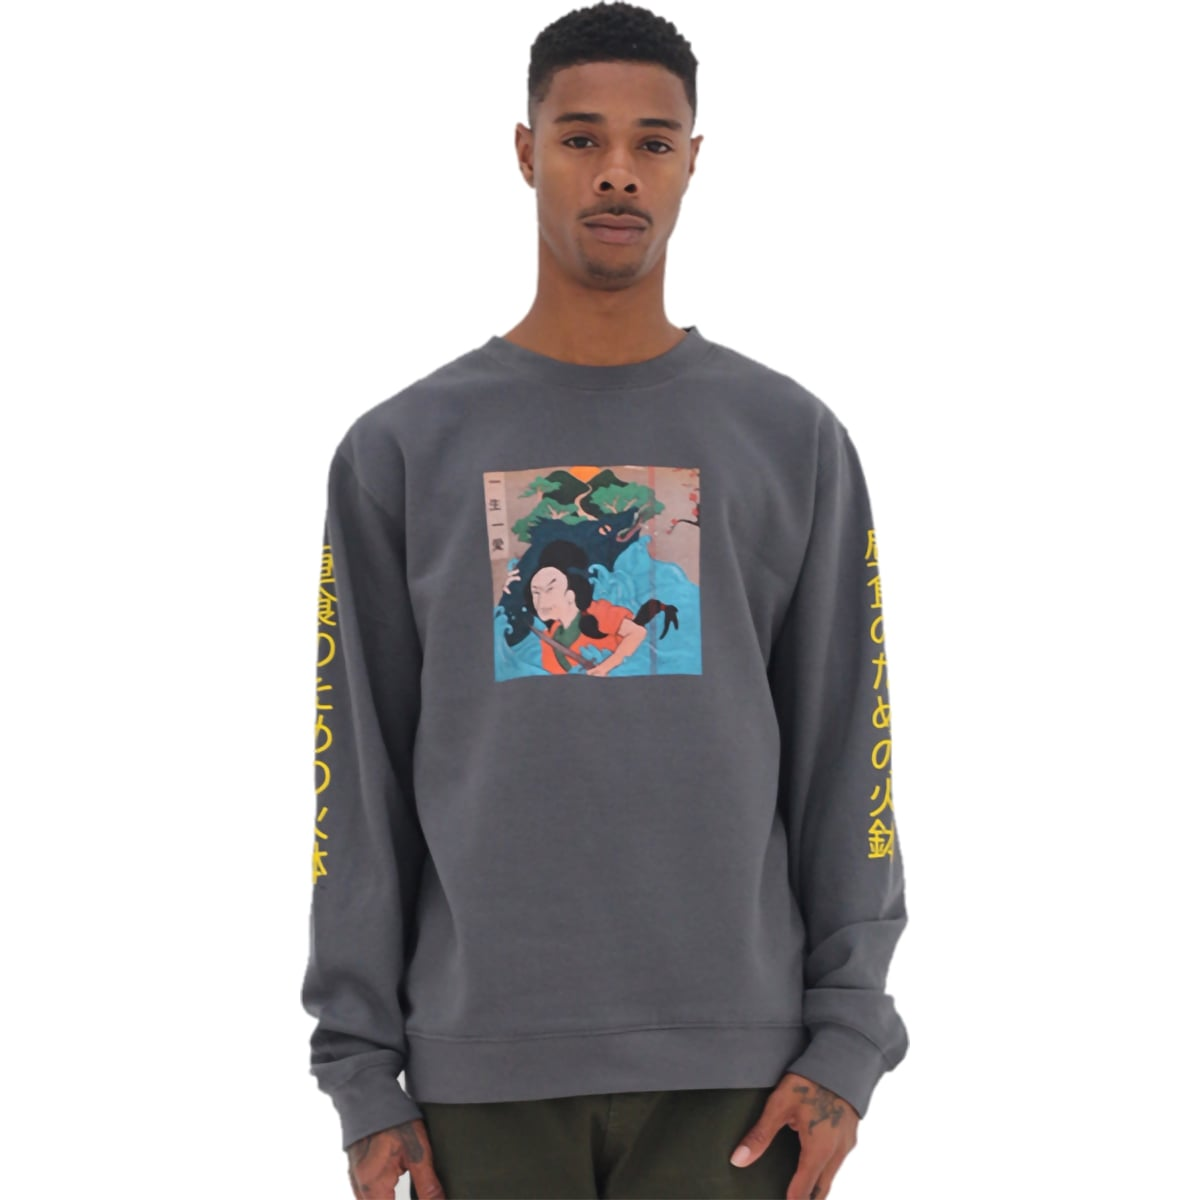 Hibachi for Lunch Sweatshirt [Charcoal]